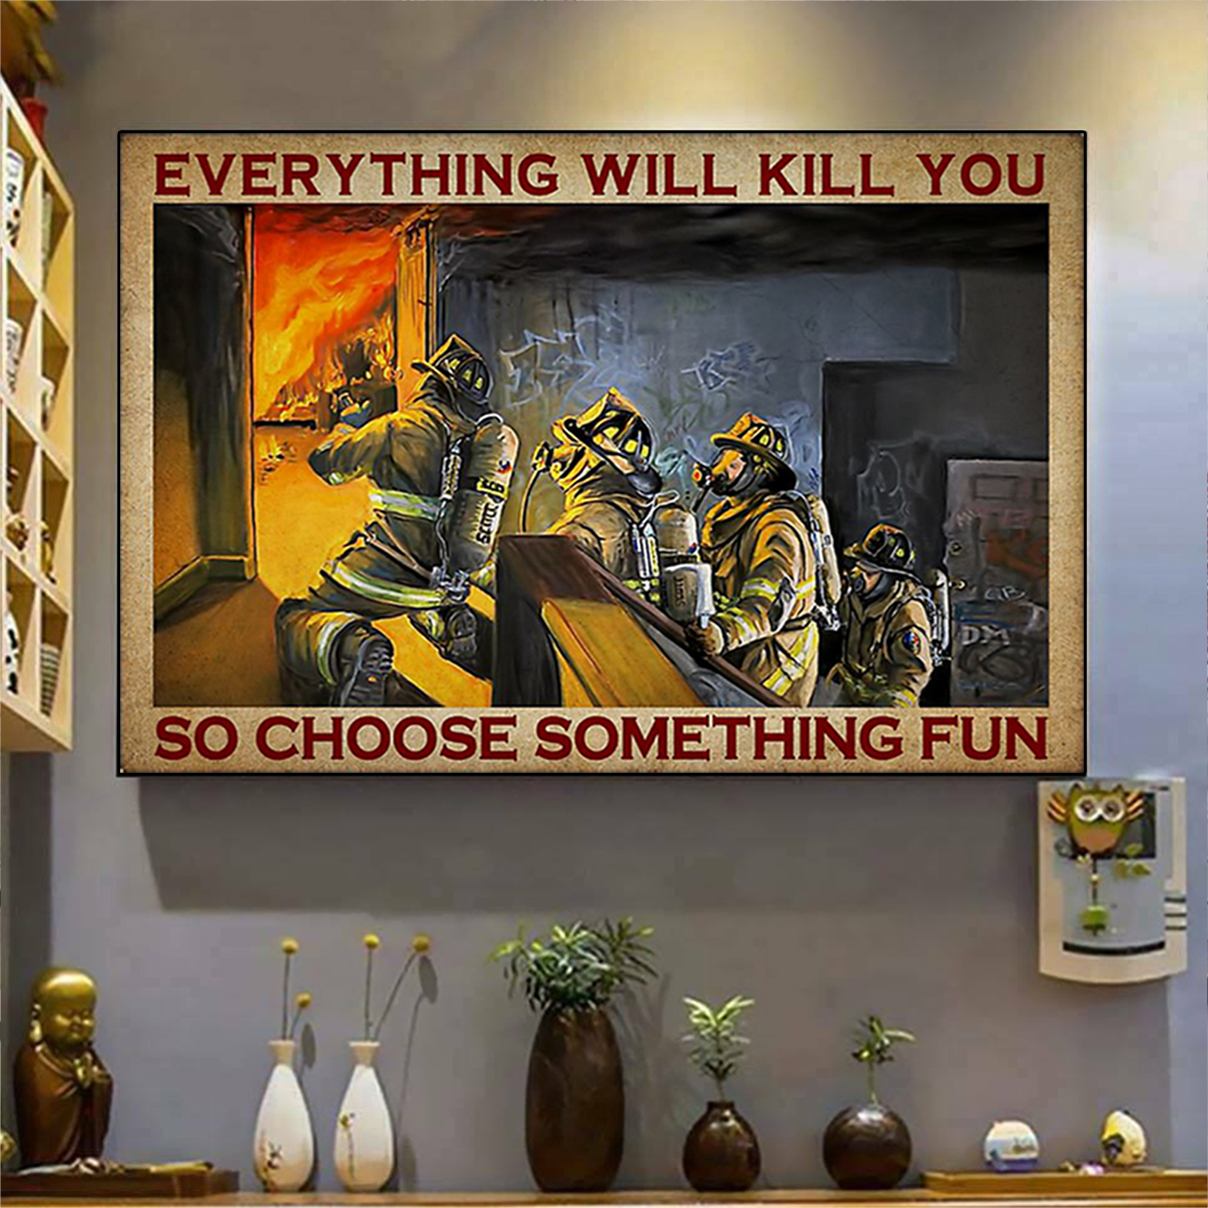 Firefighter Everything will kill you so firefighter poster A3